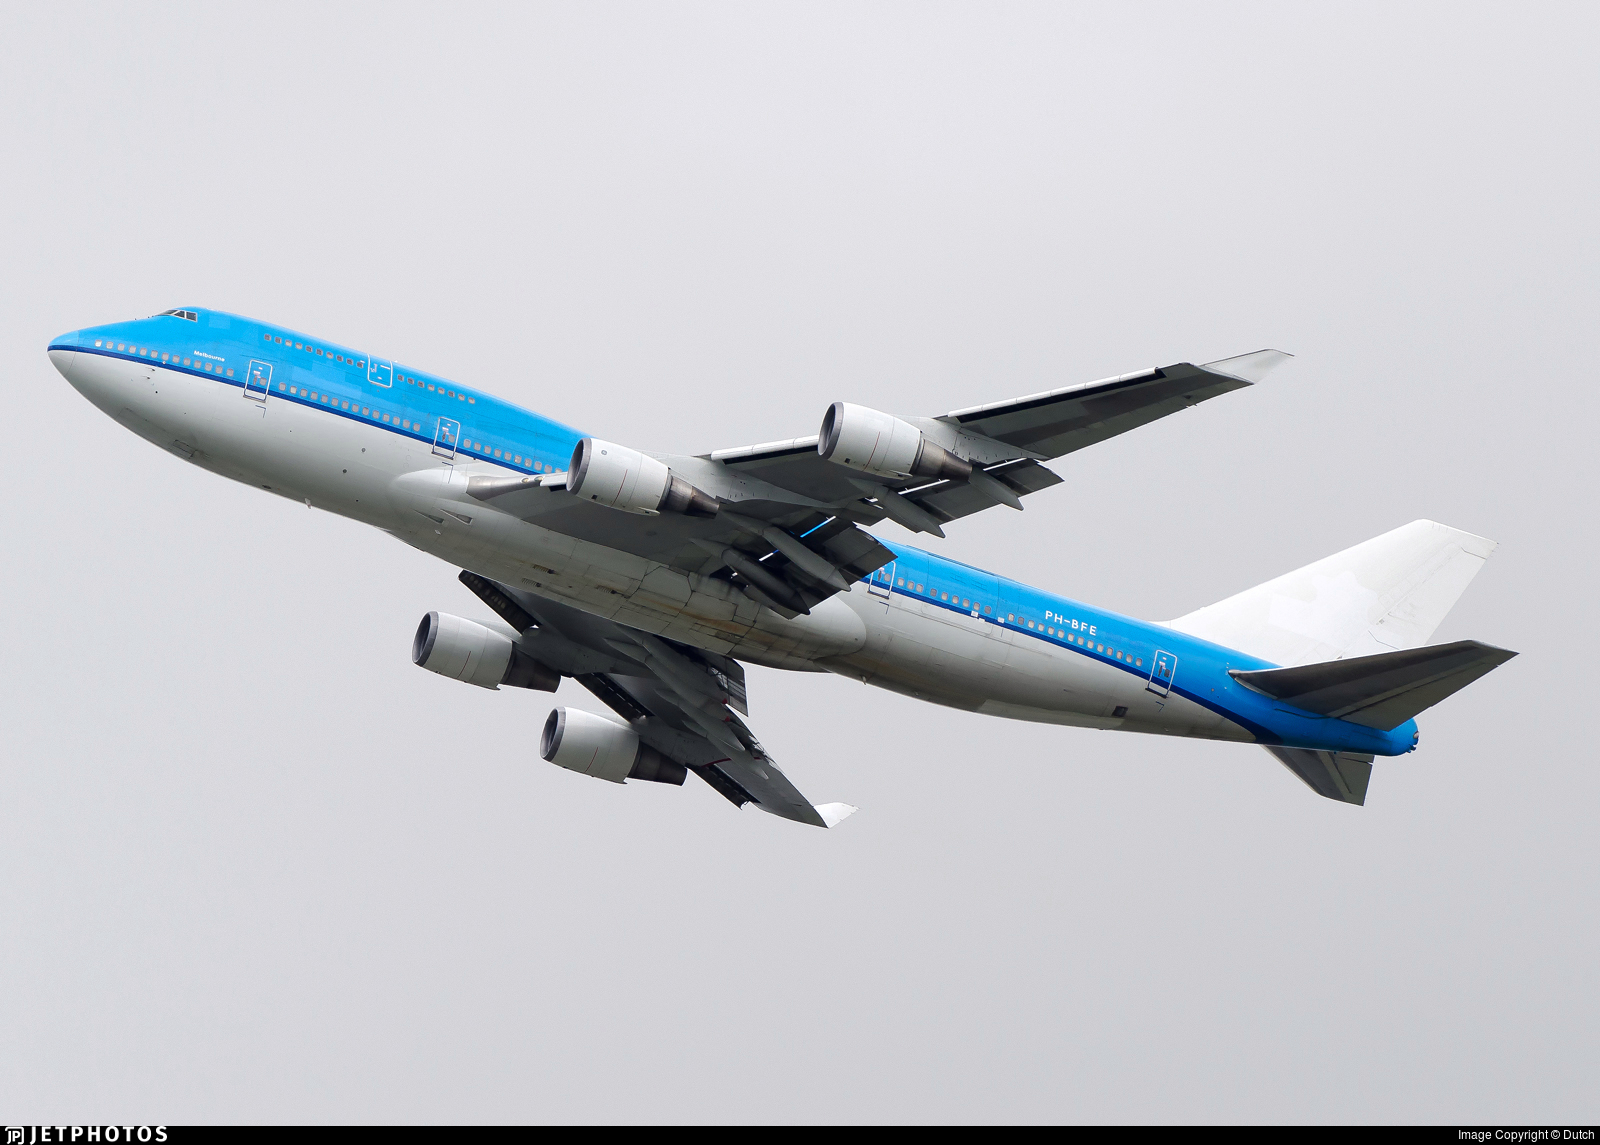 PH-BFE - Boeing 747-406(M) - Untitled